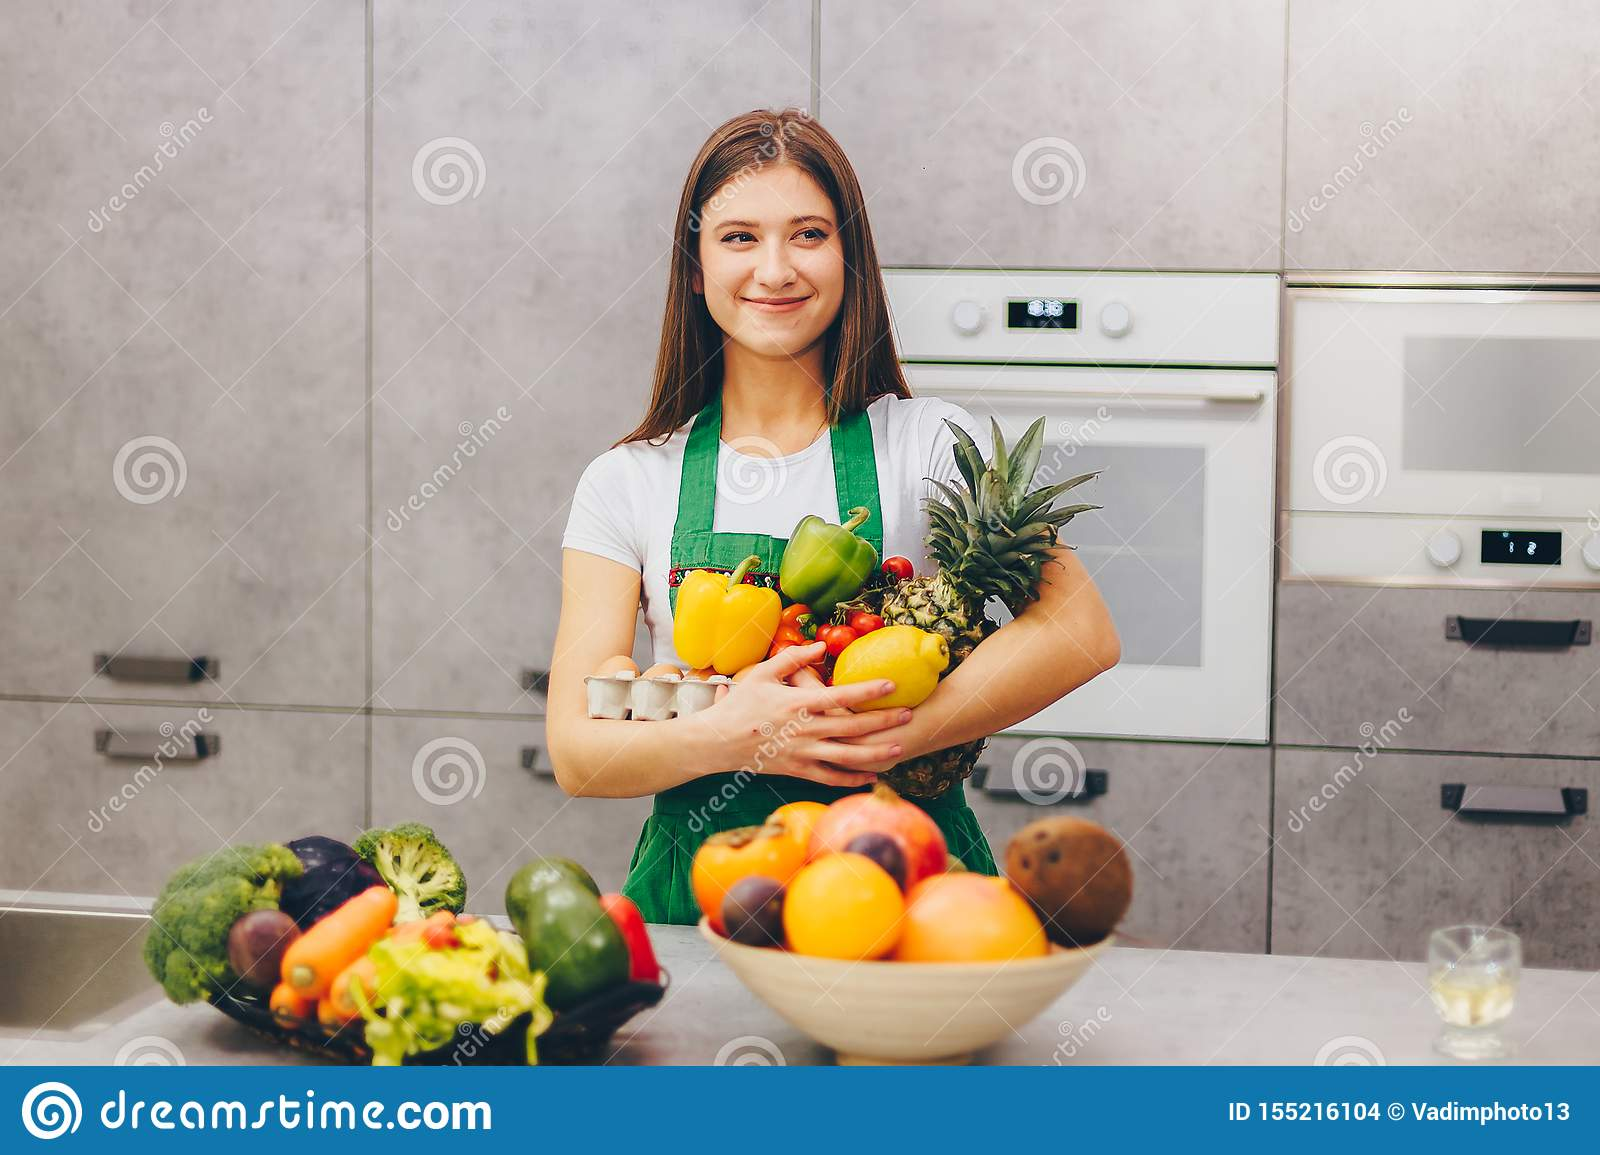 A girl smiling holding nutritious fruit and veg